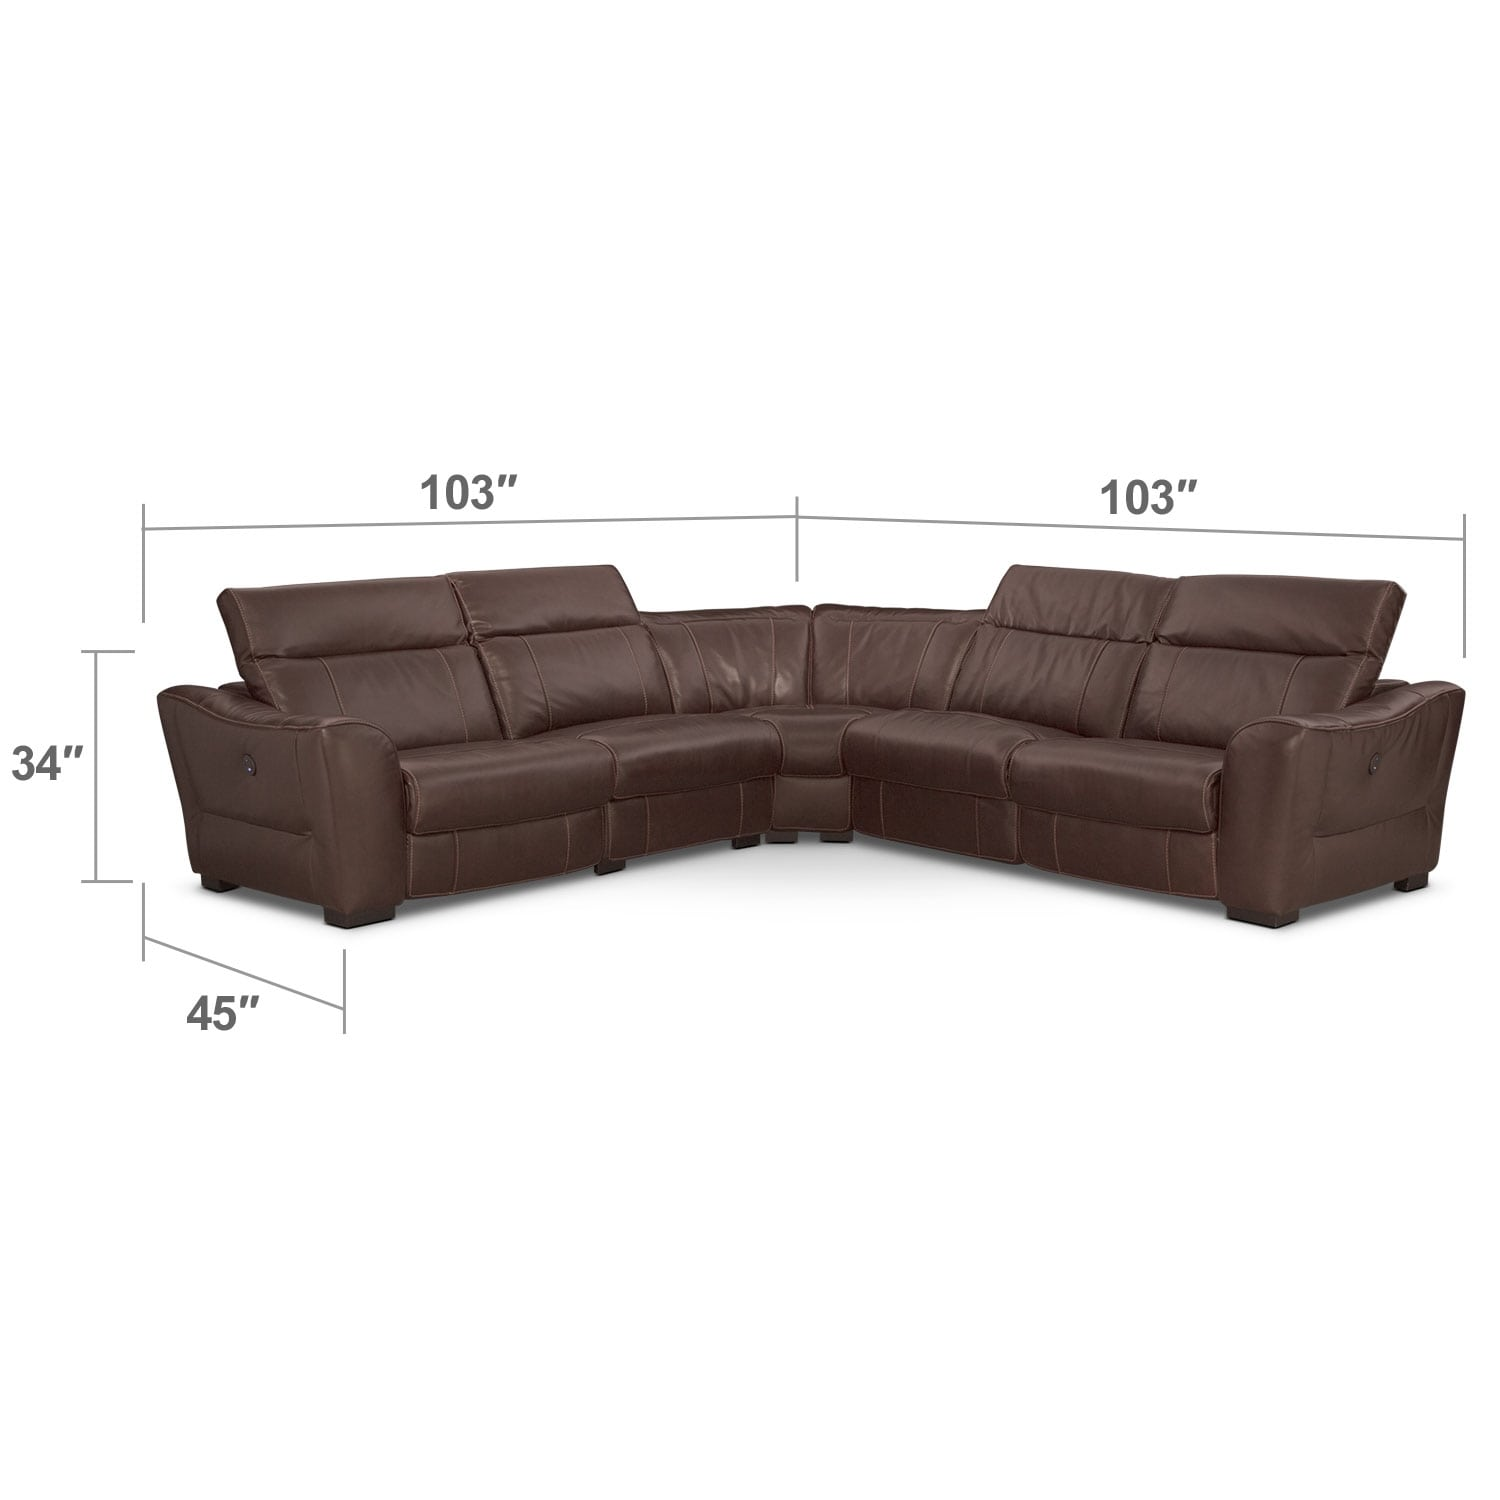 Living Room Furniture - Palisade Brown 5 Pc. Power 2-Seat Reclining Sectional